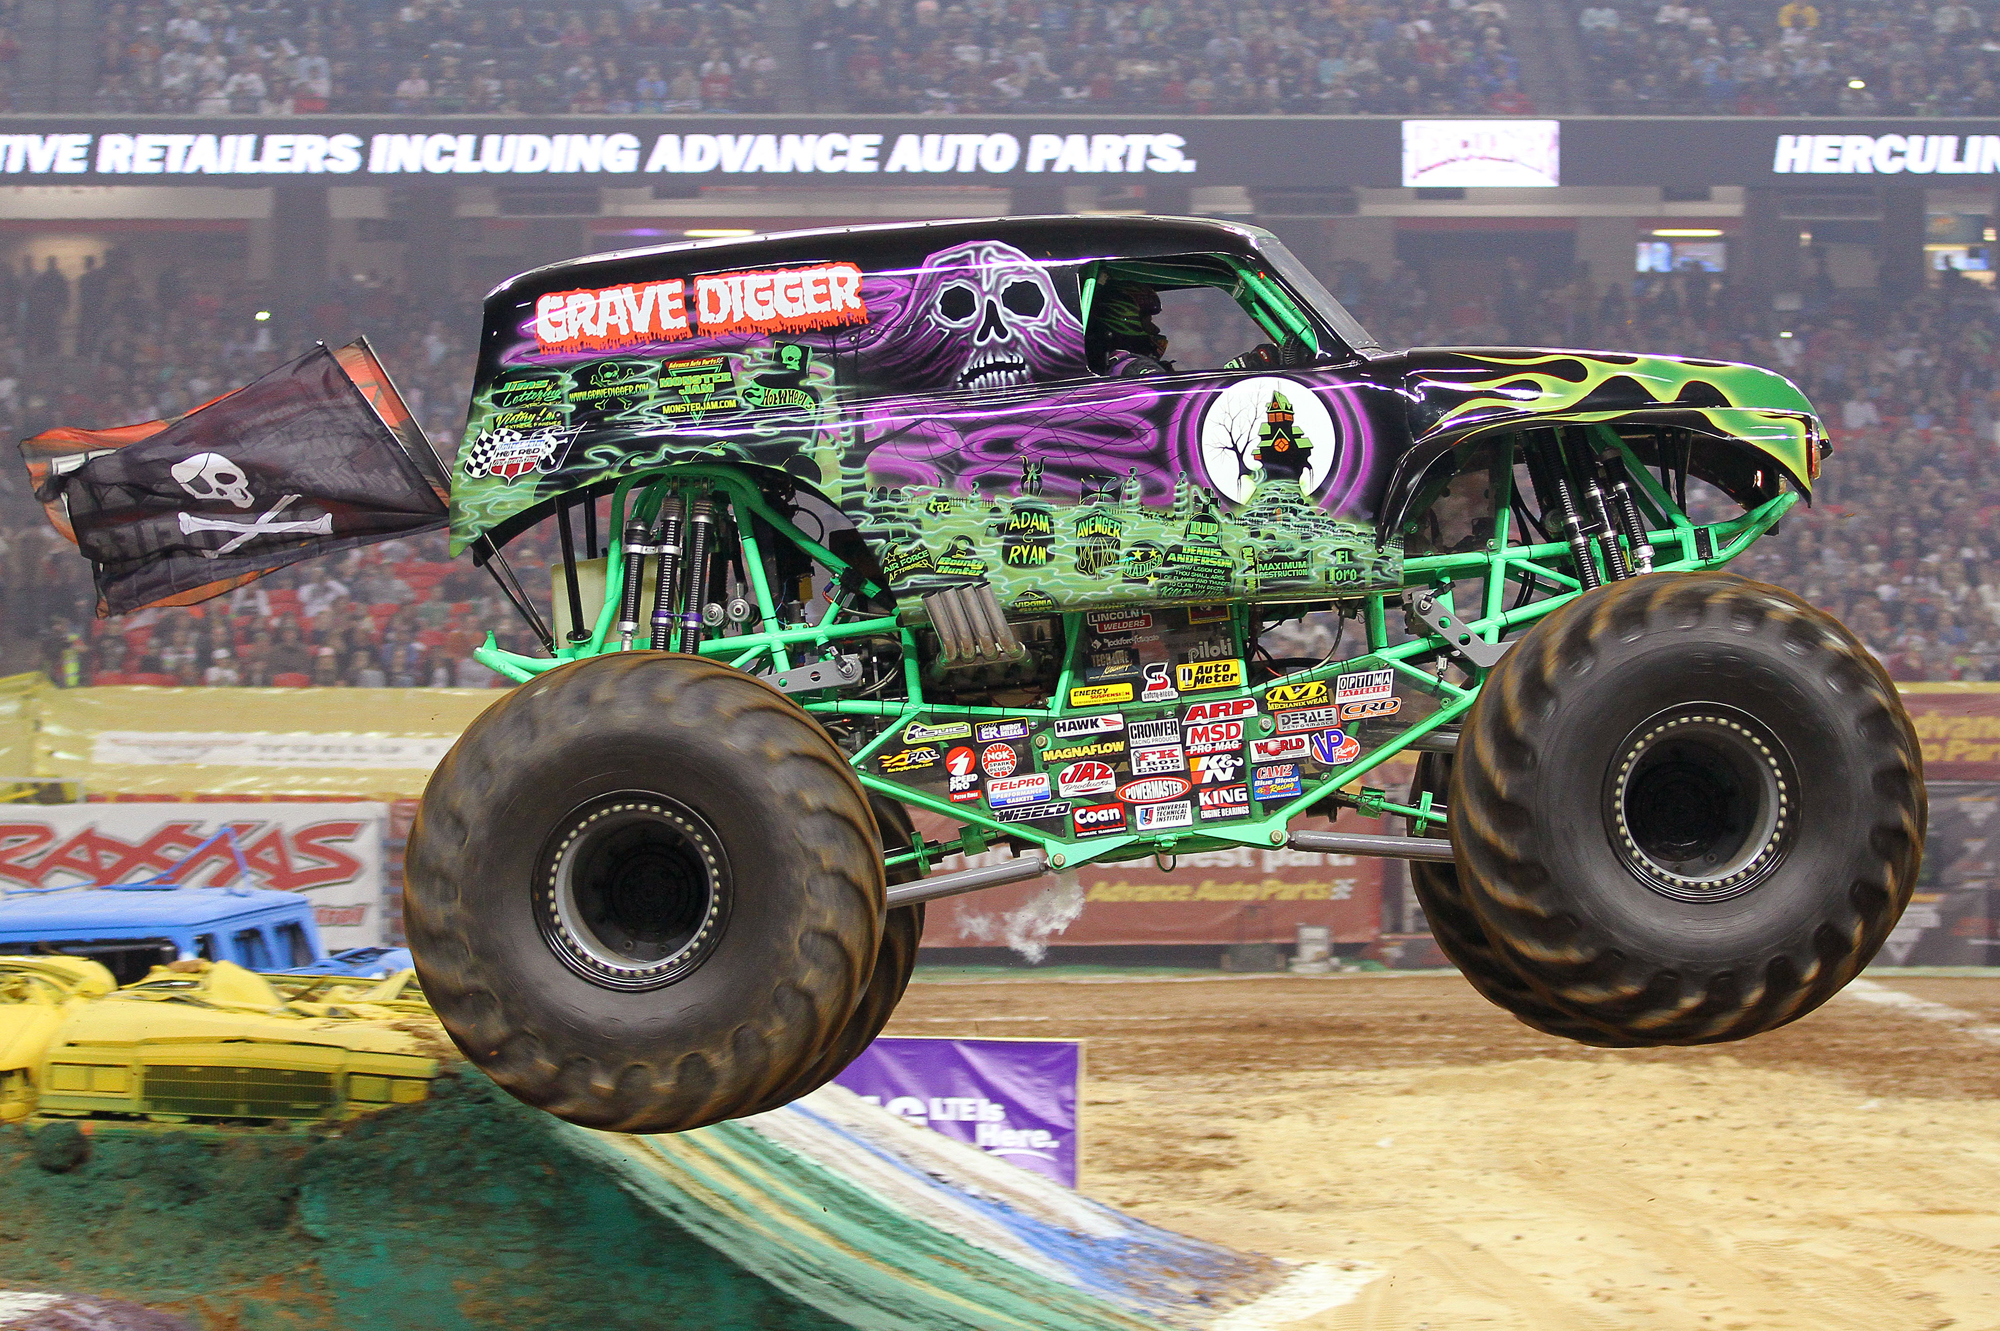 Monster Trucks Hit Uae This Weekend Video Motoring Middle East Car News Reviews And Buying Guidesmotoring Middle East Car News Reviews And Buying Guides